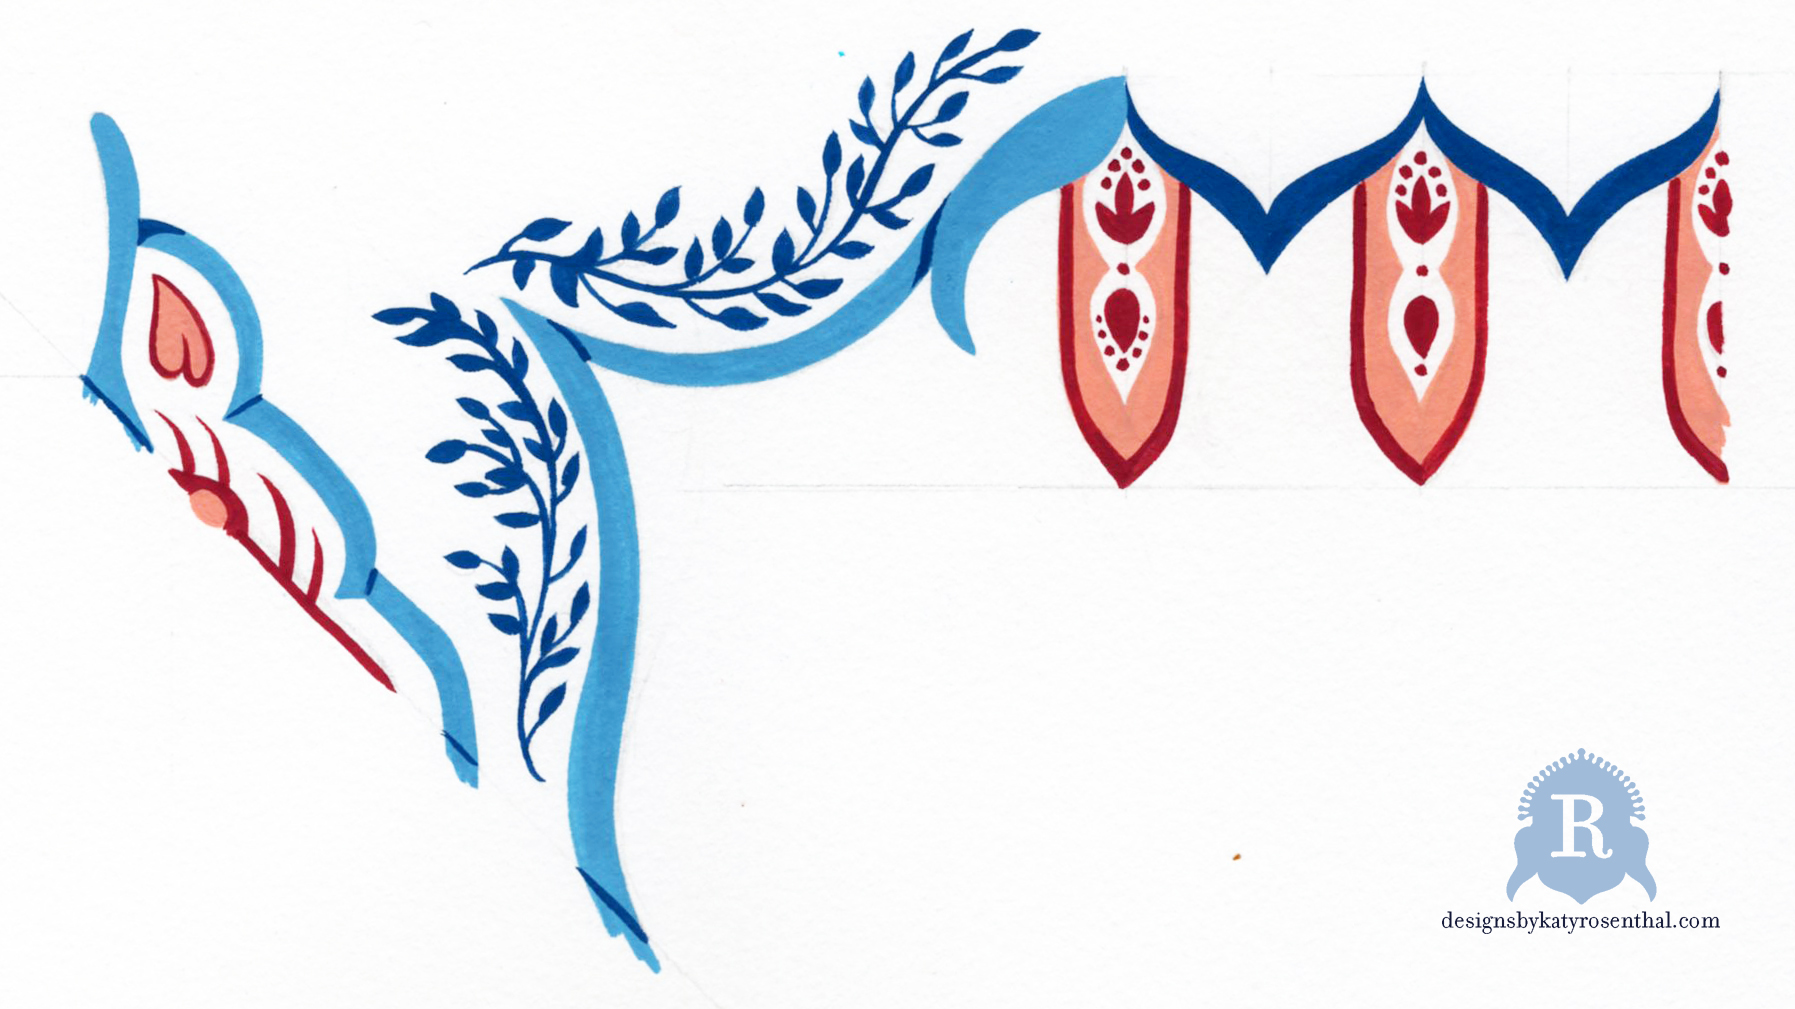 My gouache painting for an original border design inspired by the above research.